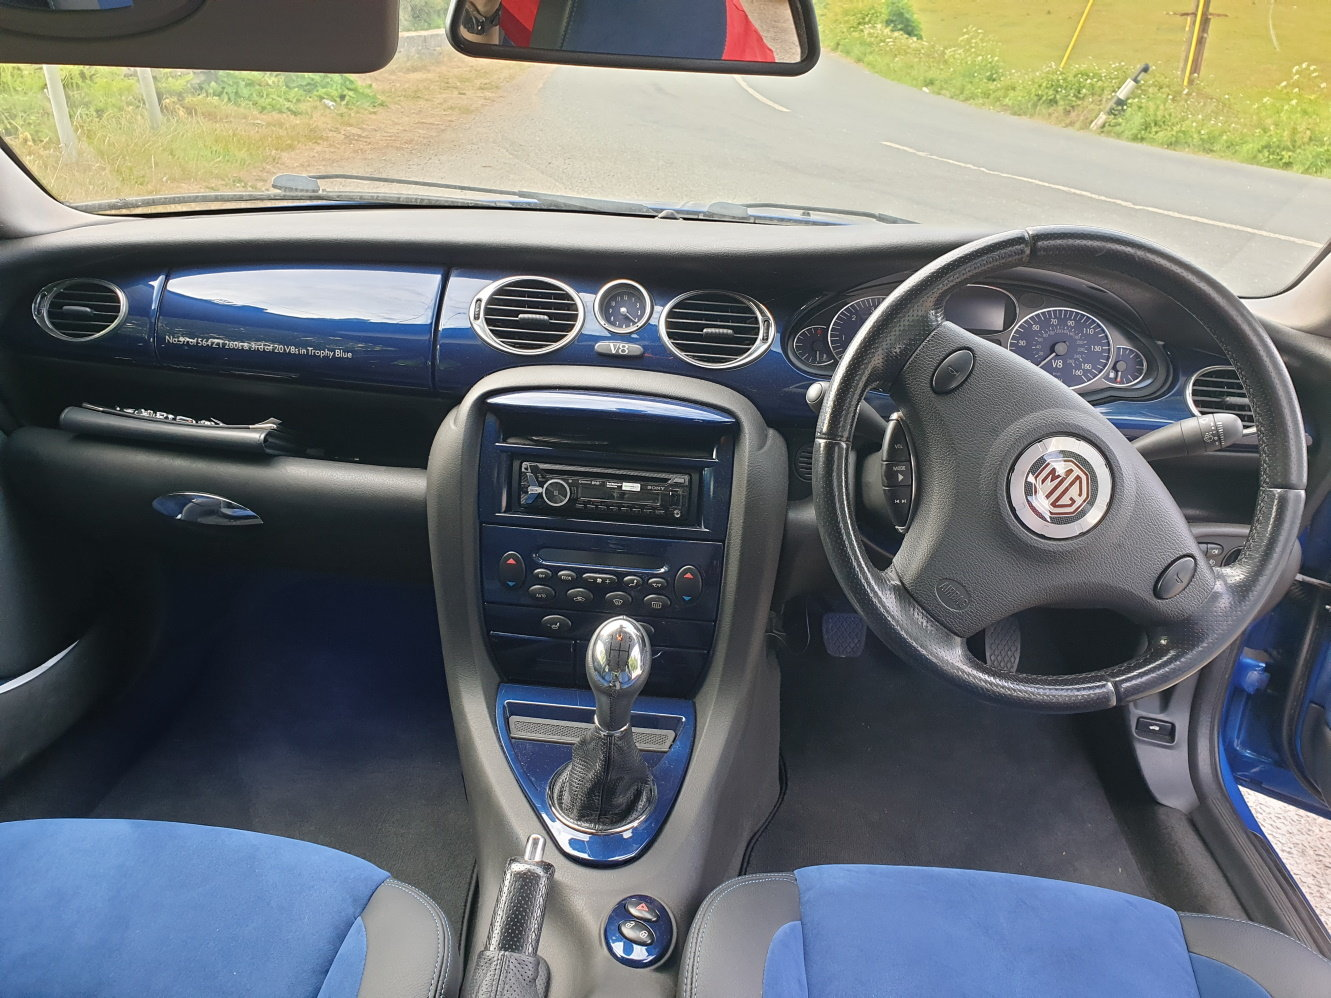 2004 MG ZT260 #57 For Sale (picture 6 of 6)